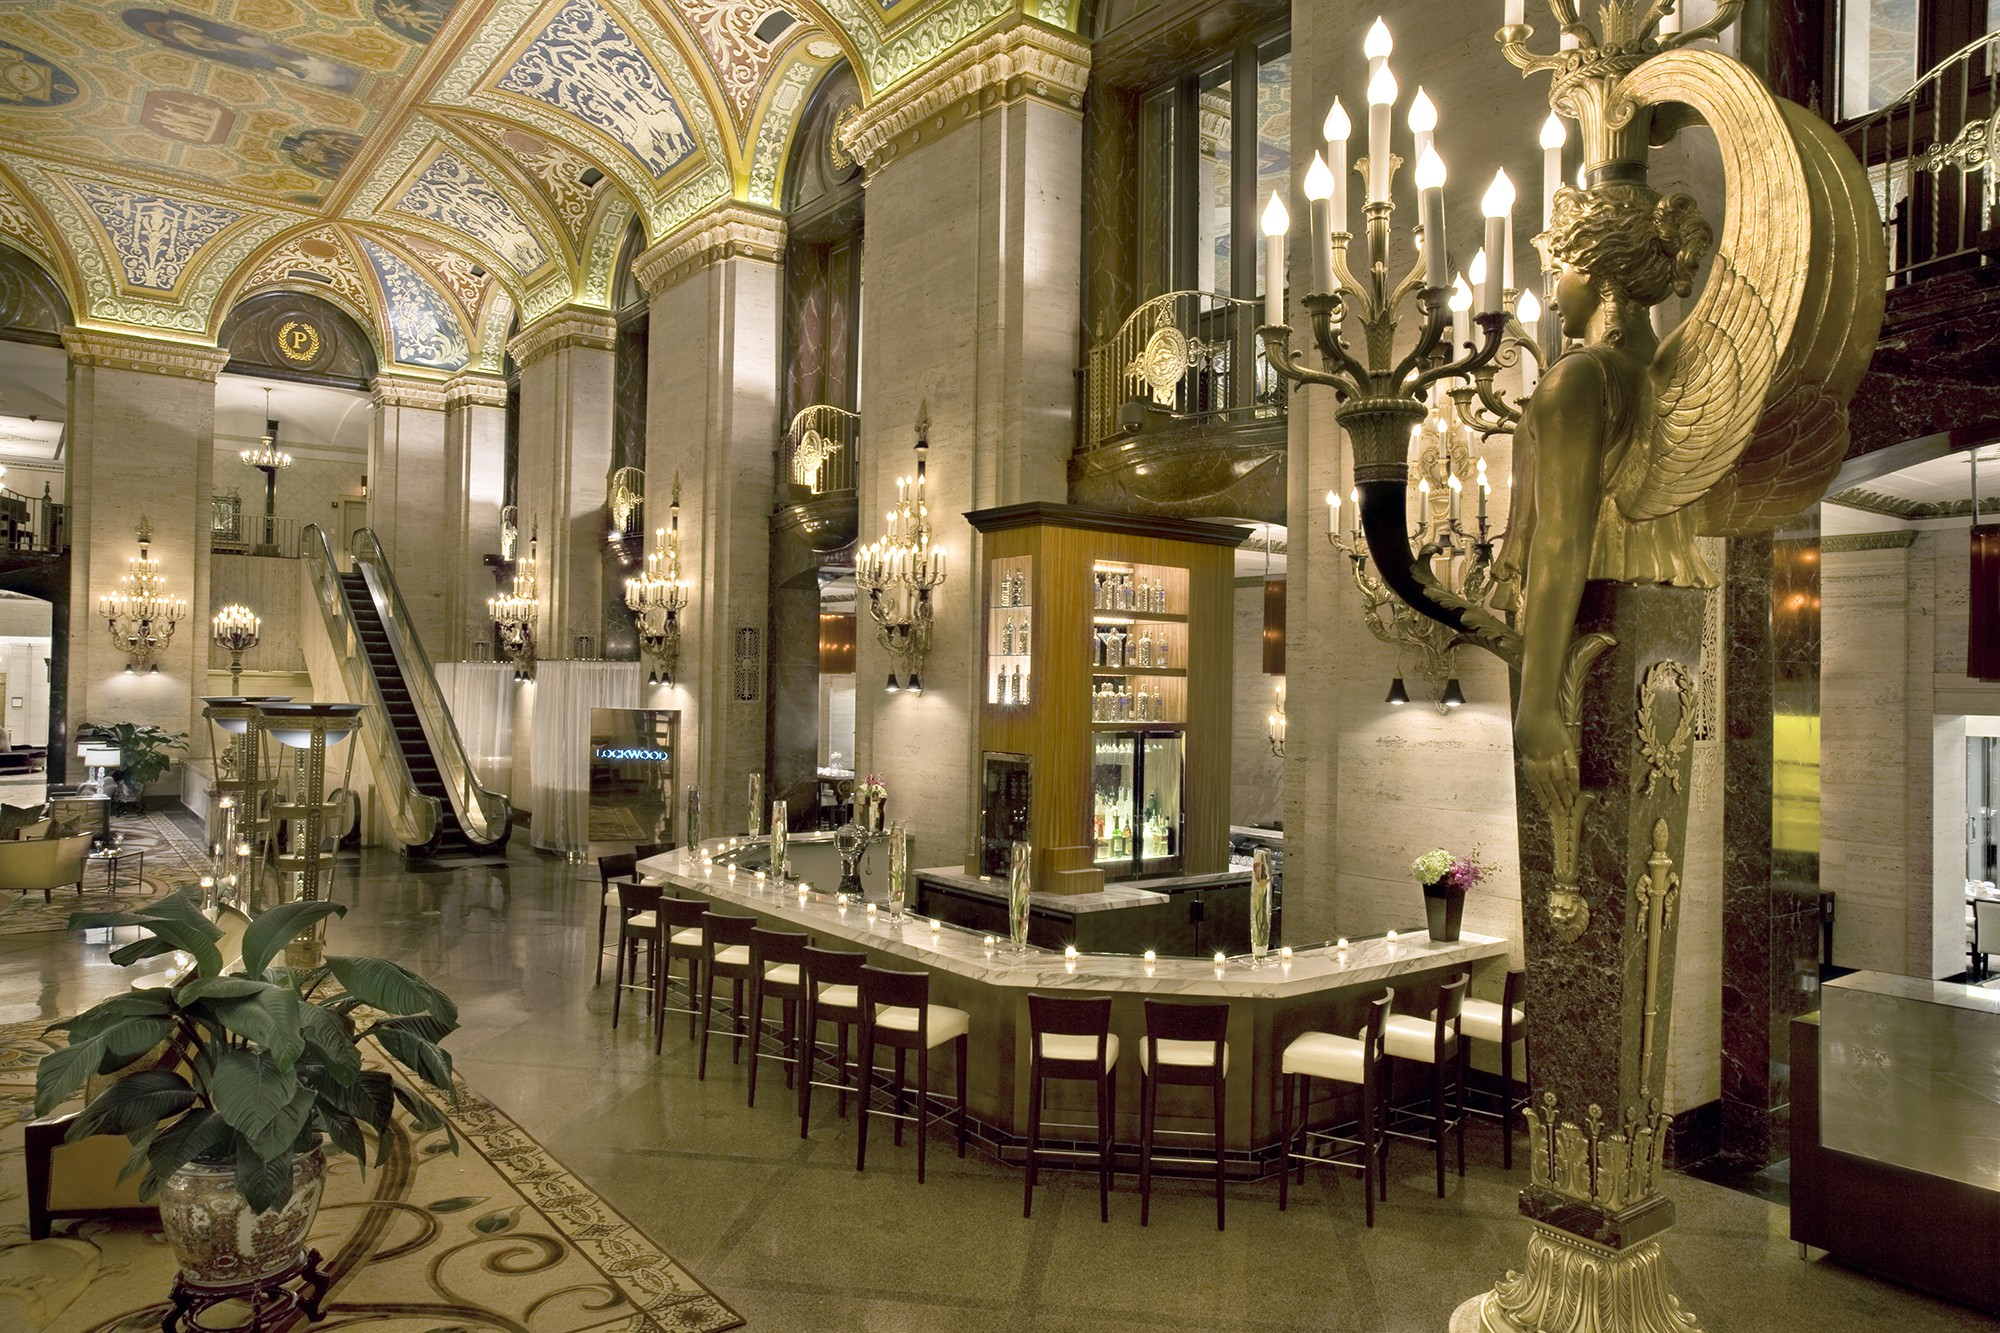 Palmer house hotel tours chicago architecture for The interior deco